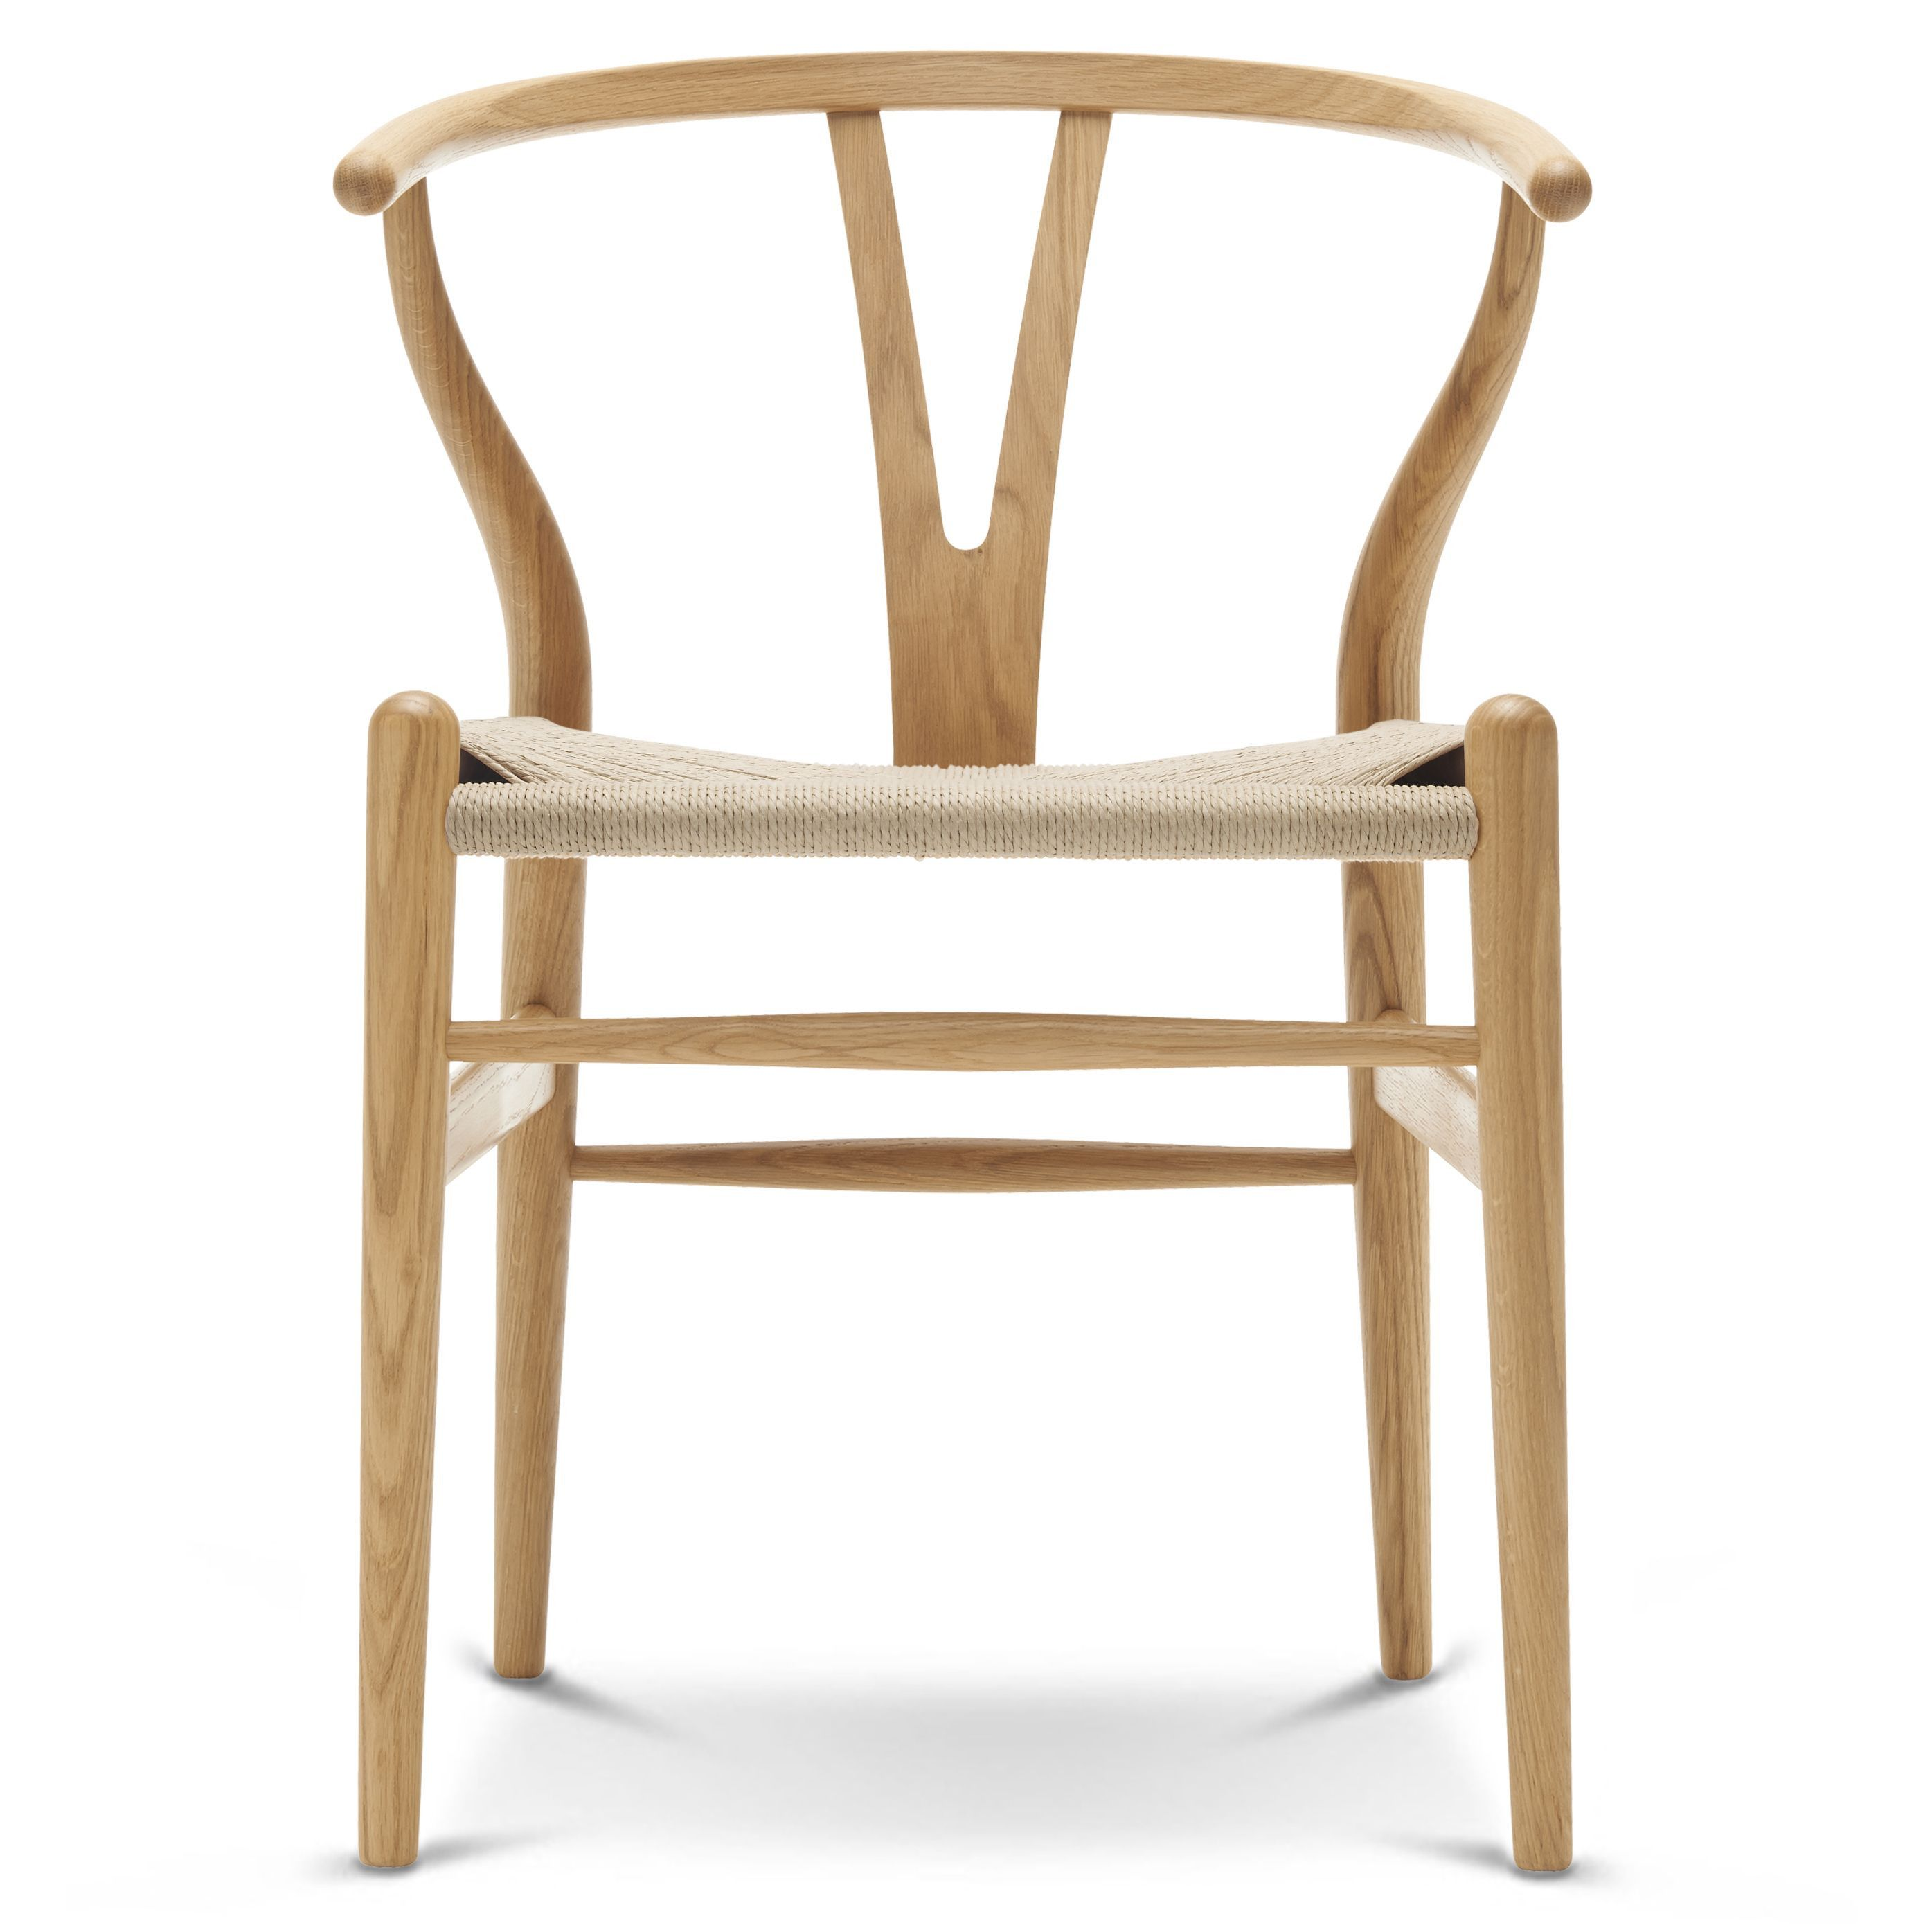 Wishbone chair echt